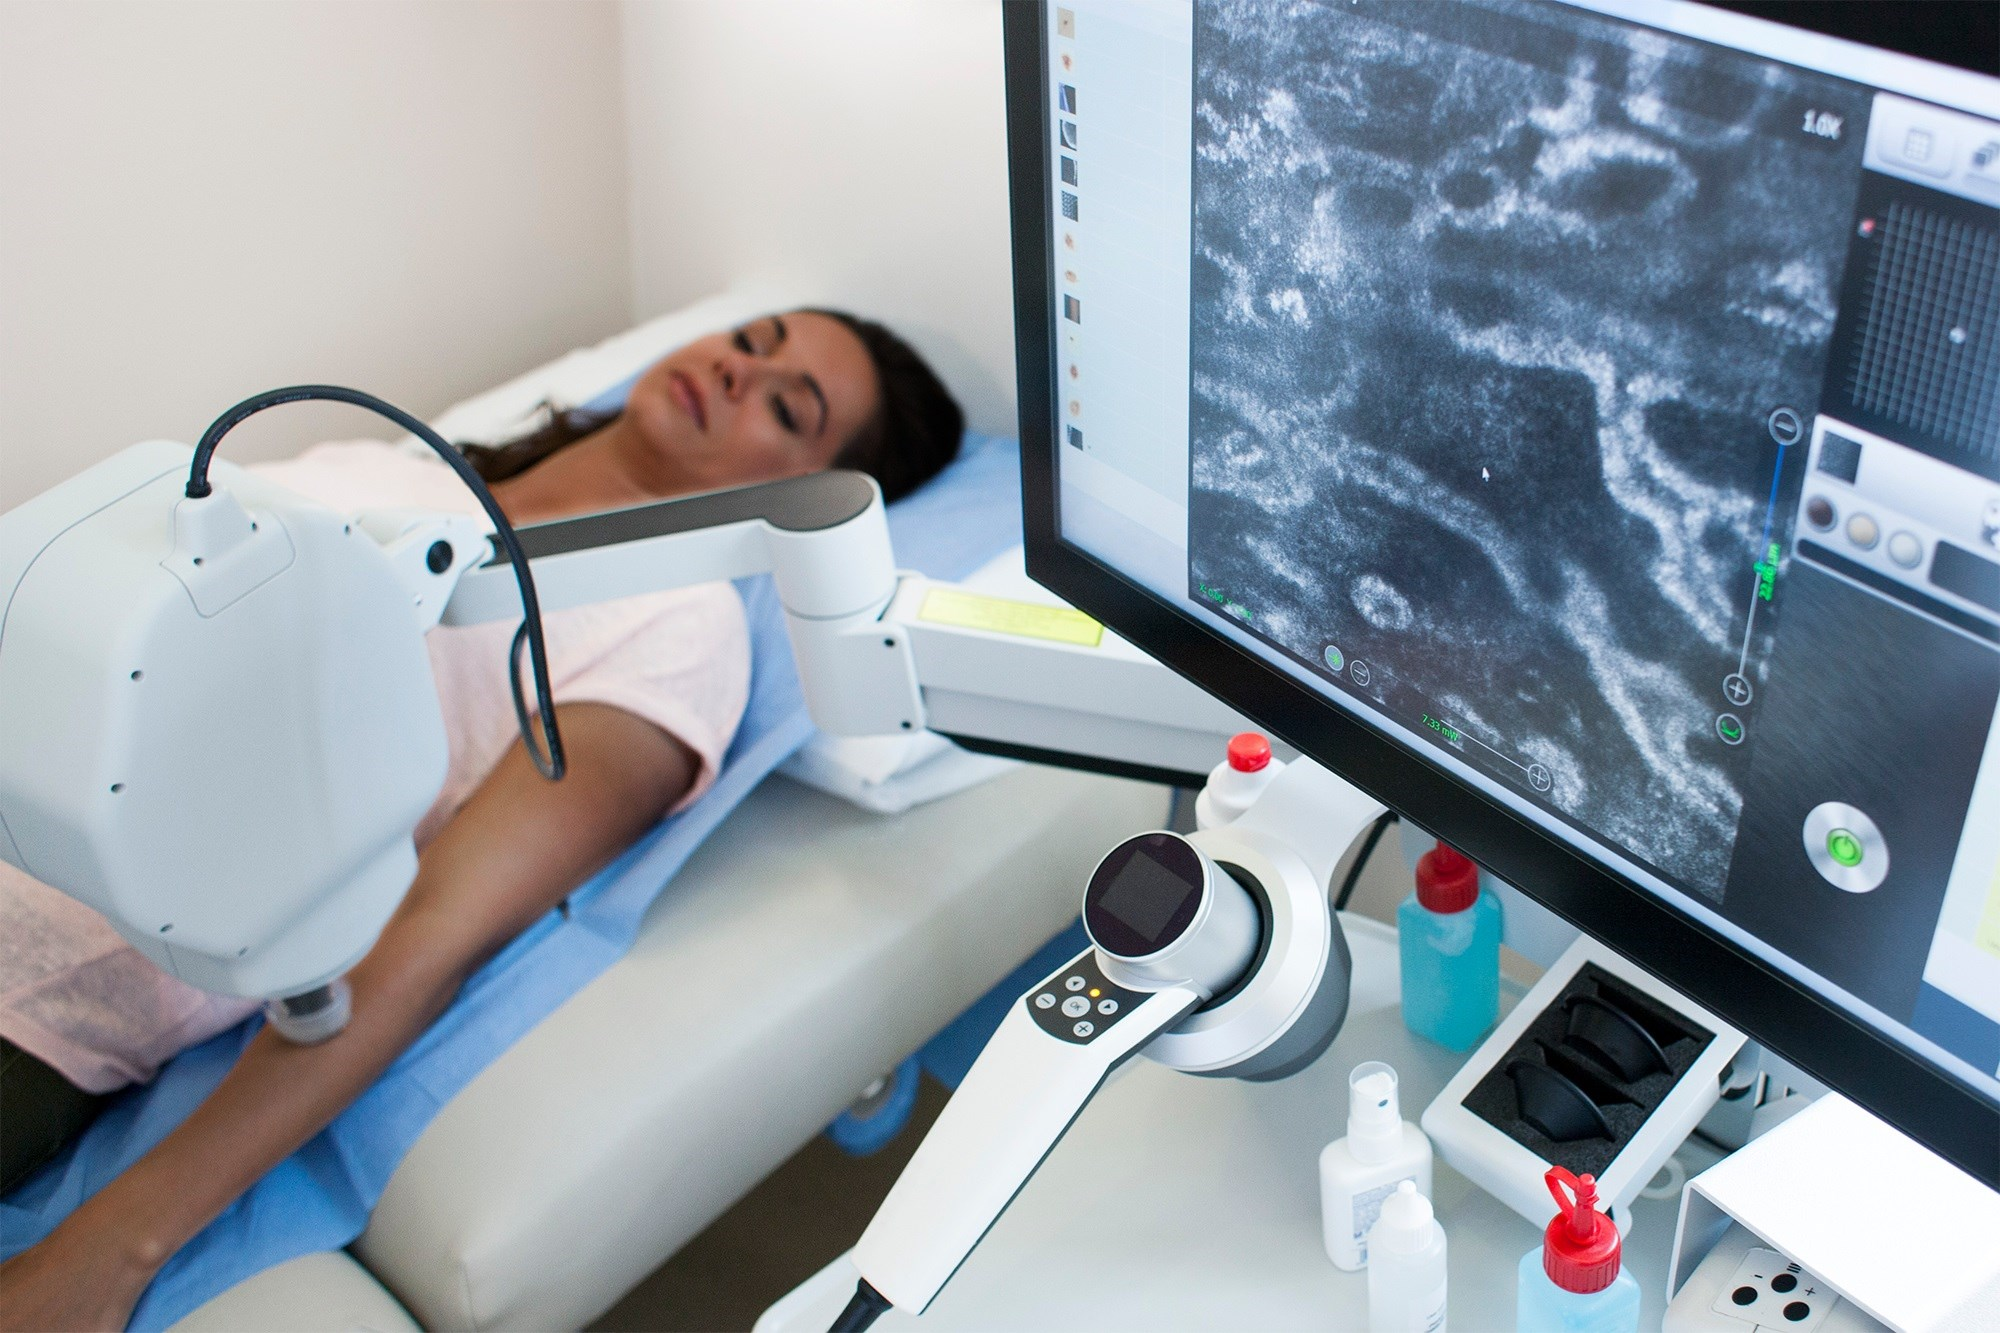 AI-Powered Cancer Diagnoses in Dermatology Leave Patients of Color in the Dust